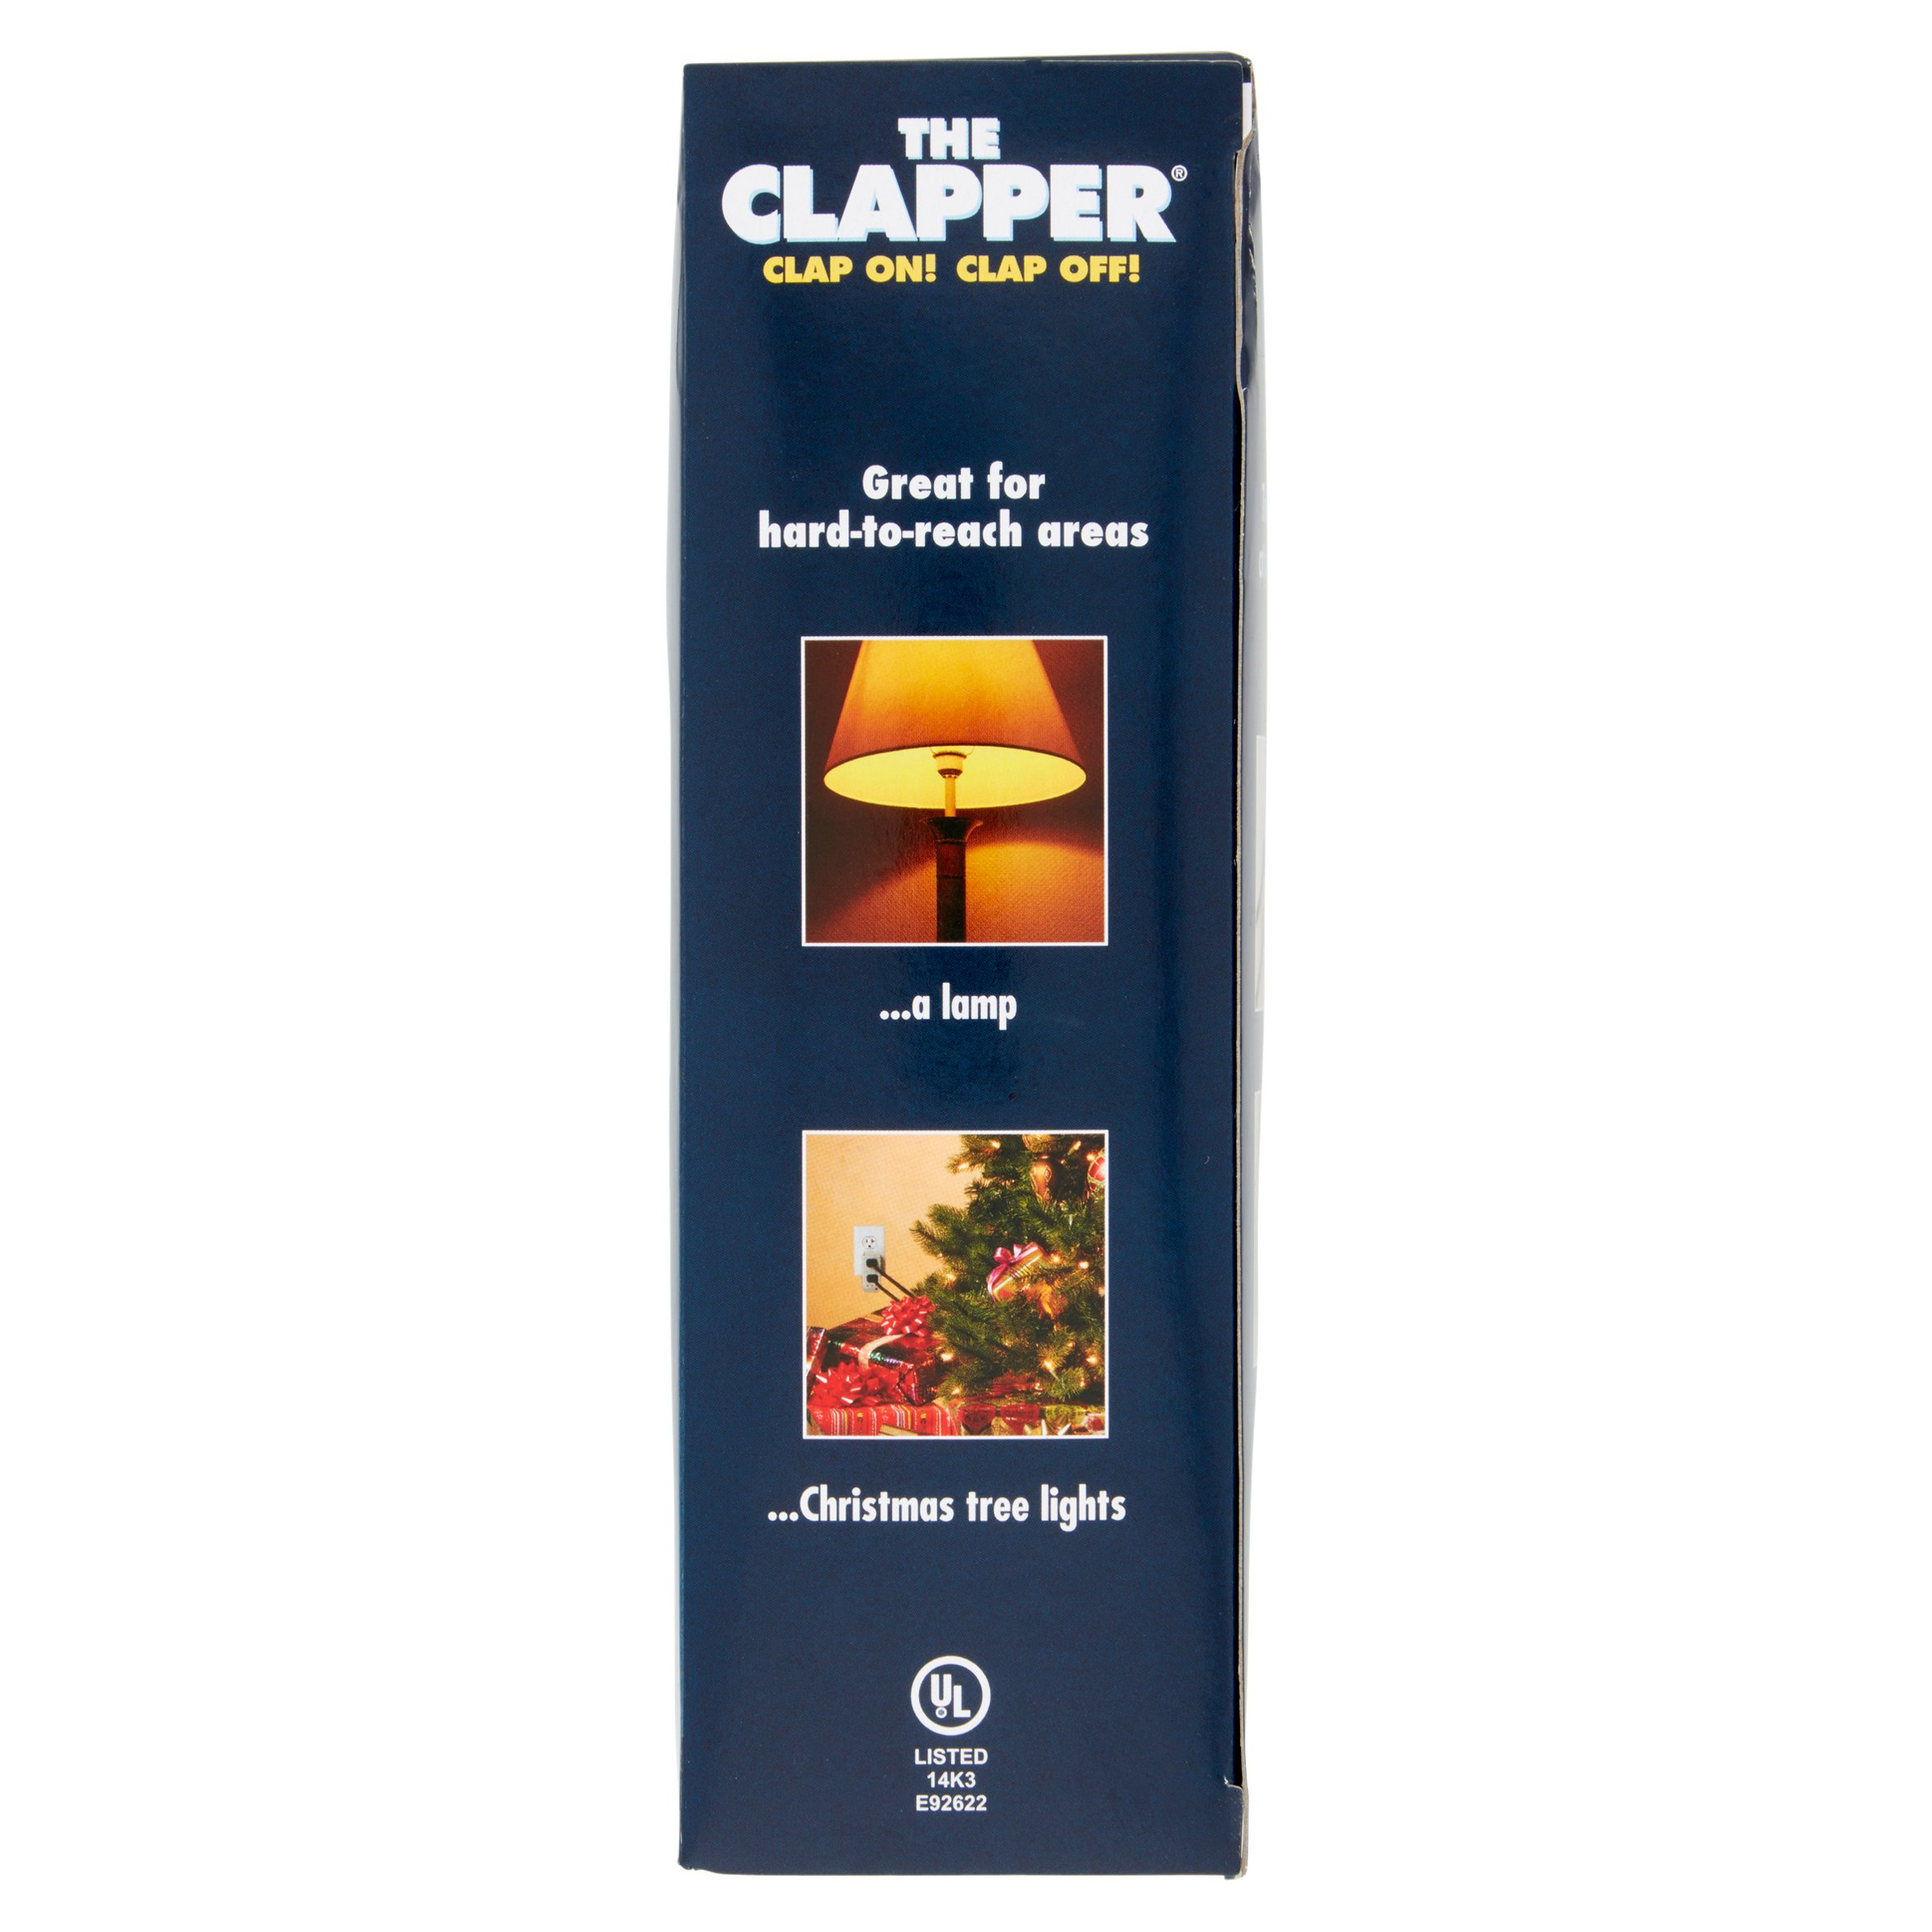 As Seen On TV The Clapper Clap On Clap Off Walmartcom - Clap lights for bedroom